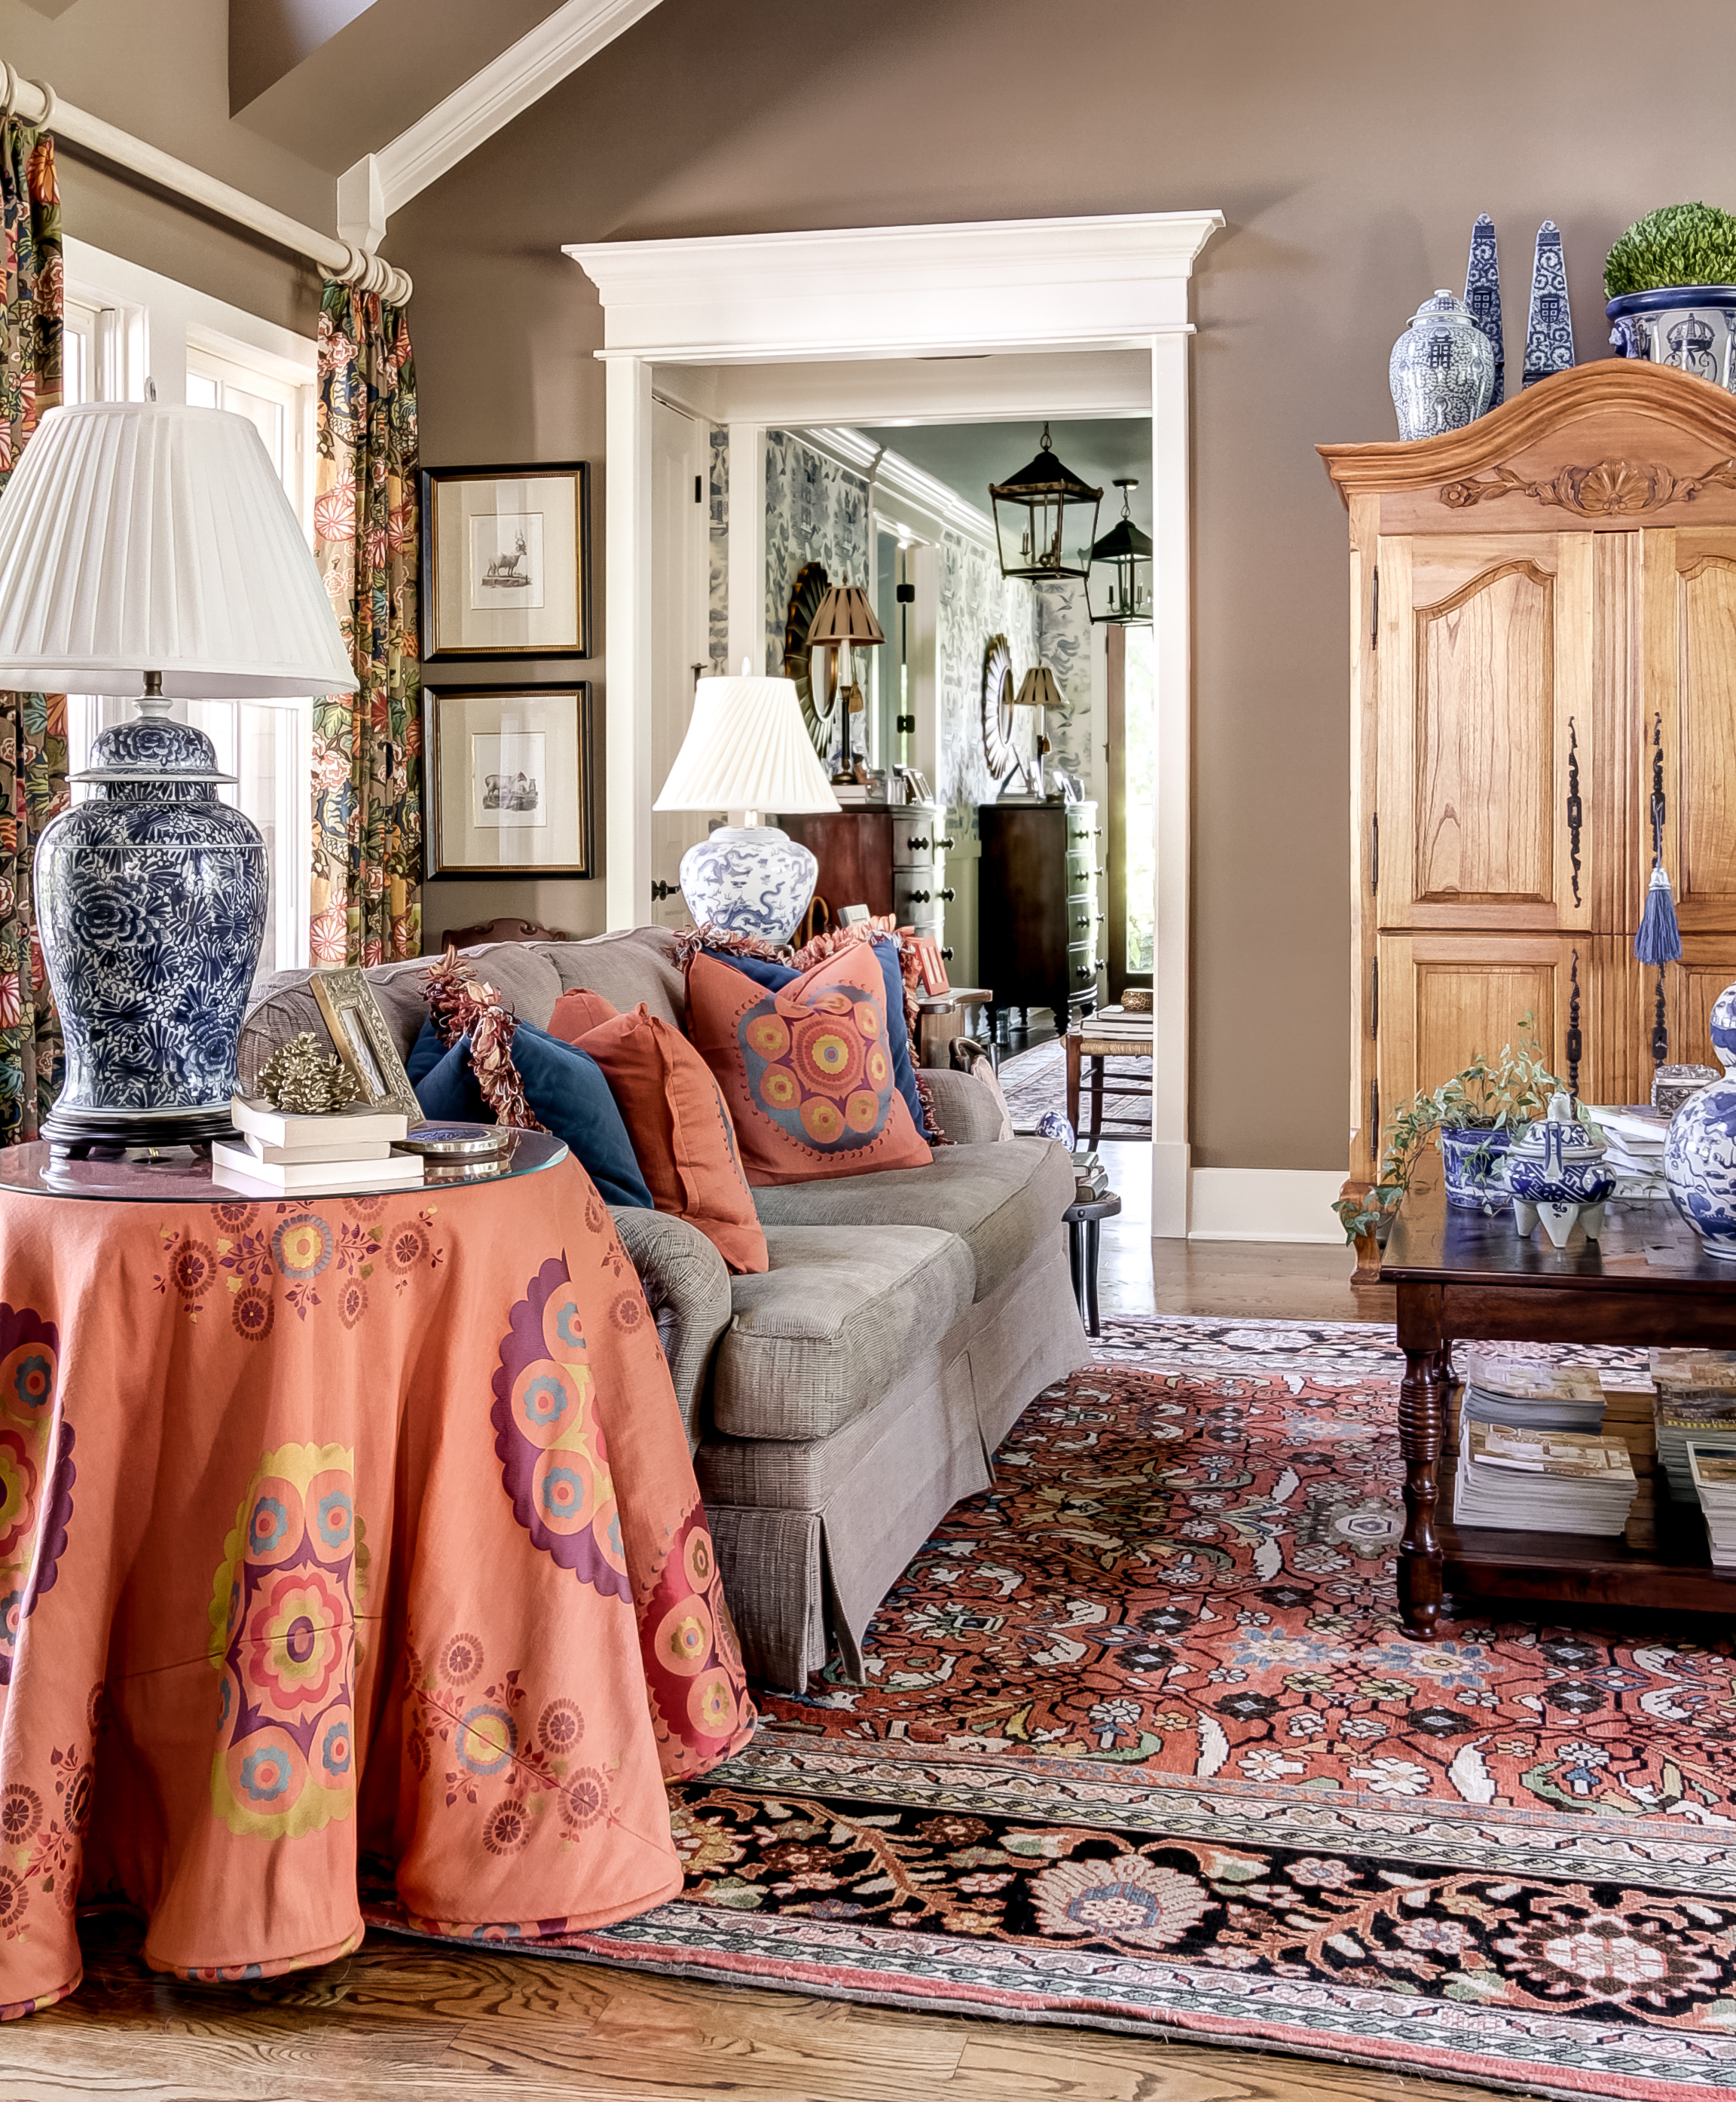 Nashville interior design by Eric Ross, top interior designer in Nashville, TN, Maximalism at its finest.